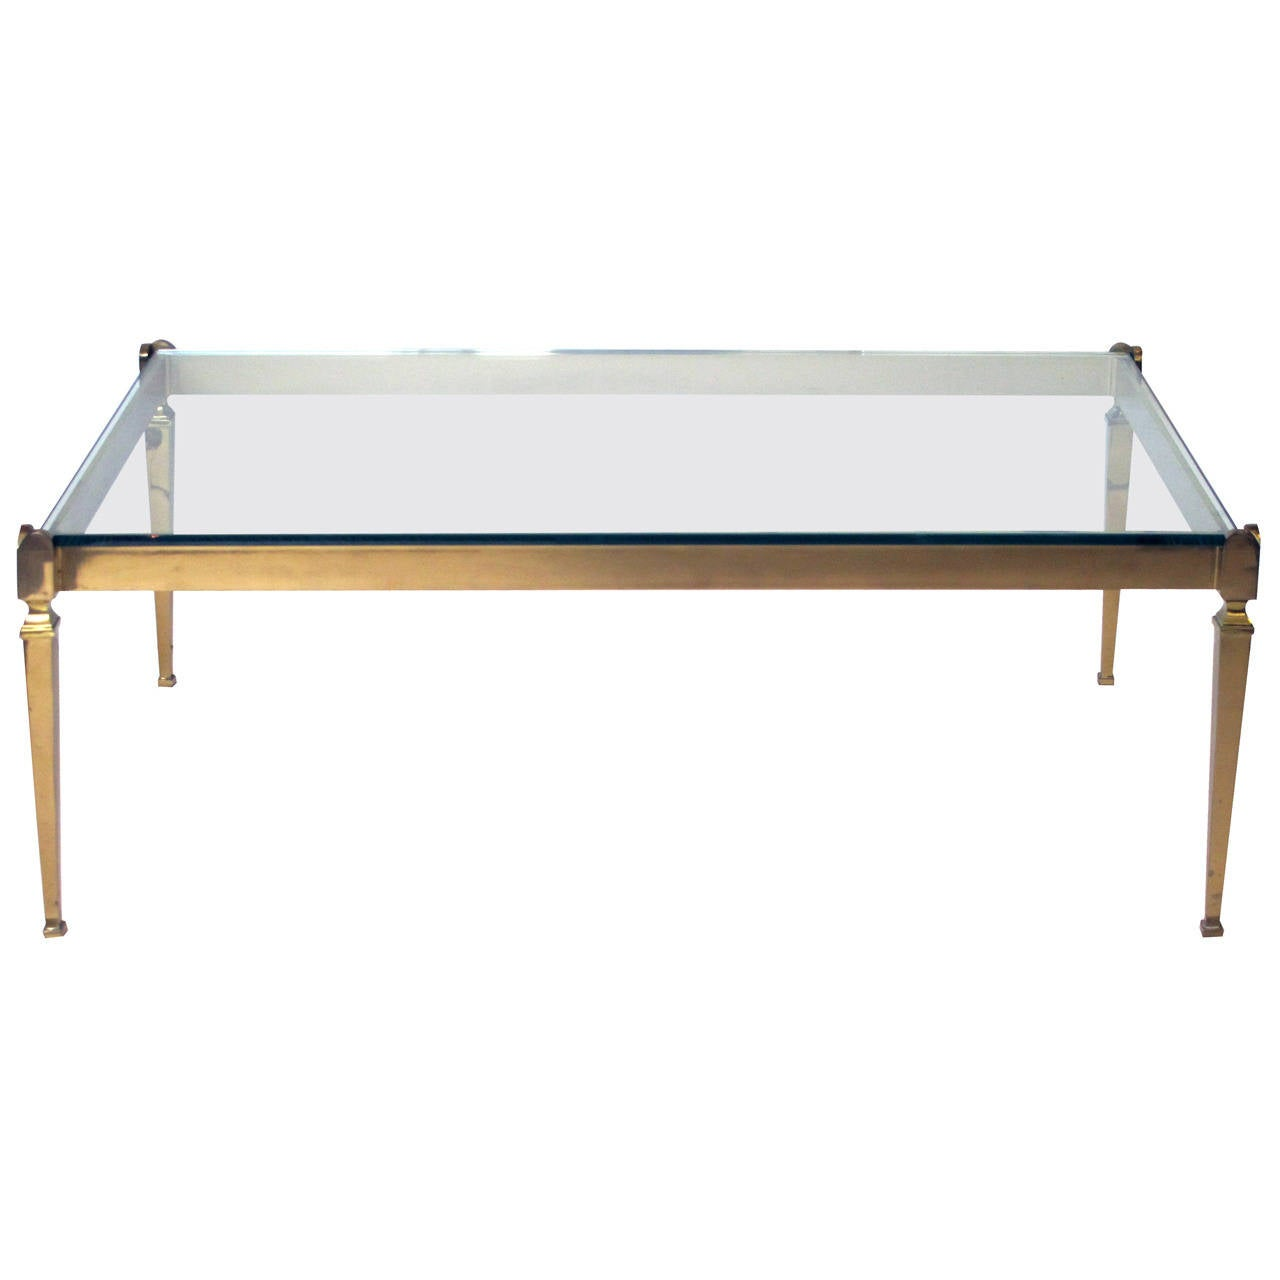 Chic French 1940s Solid Brass Rectangular Coffee Table With Glass Top At 1stdibs